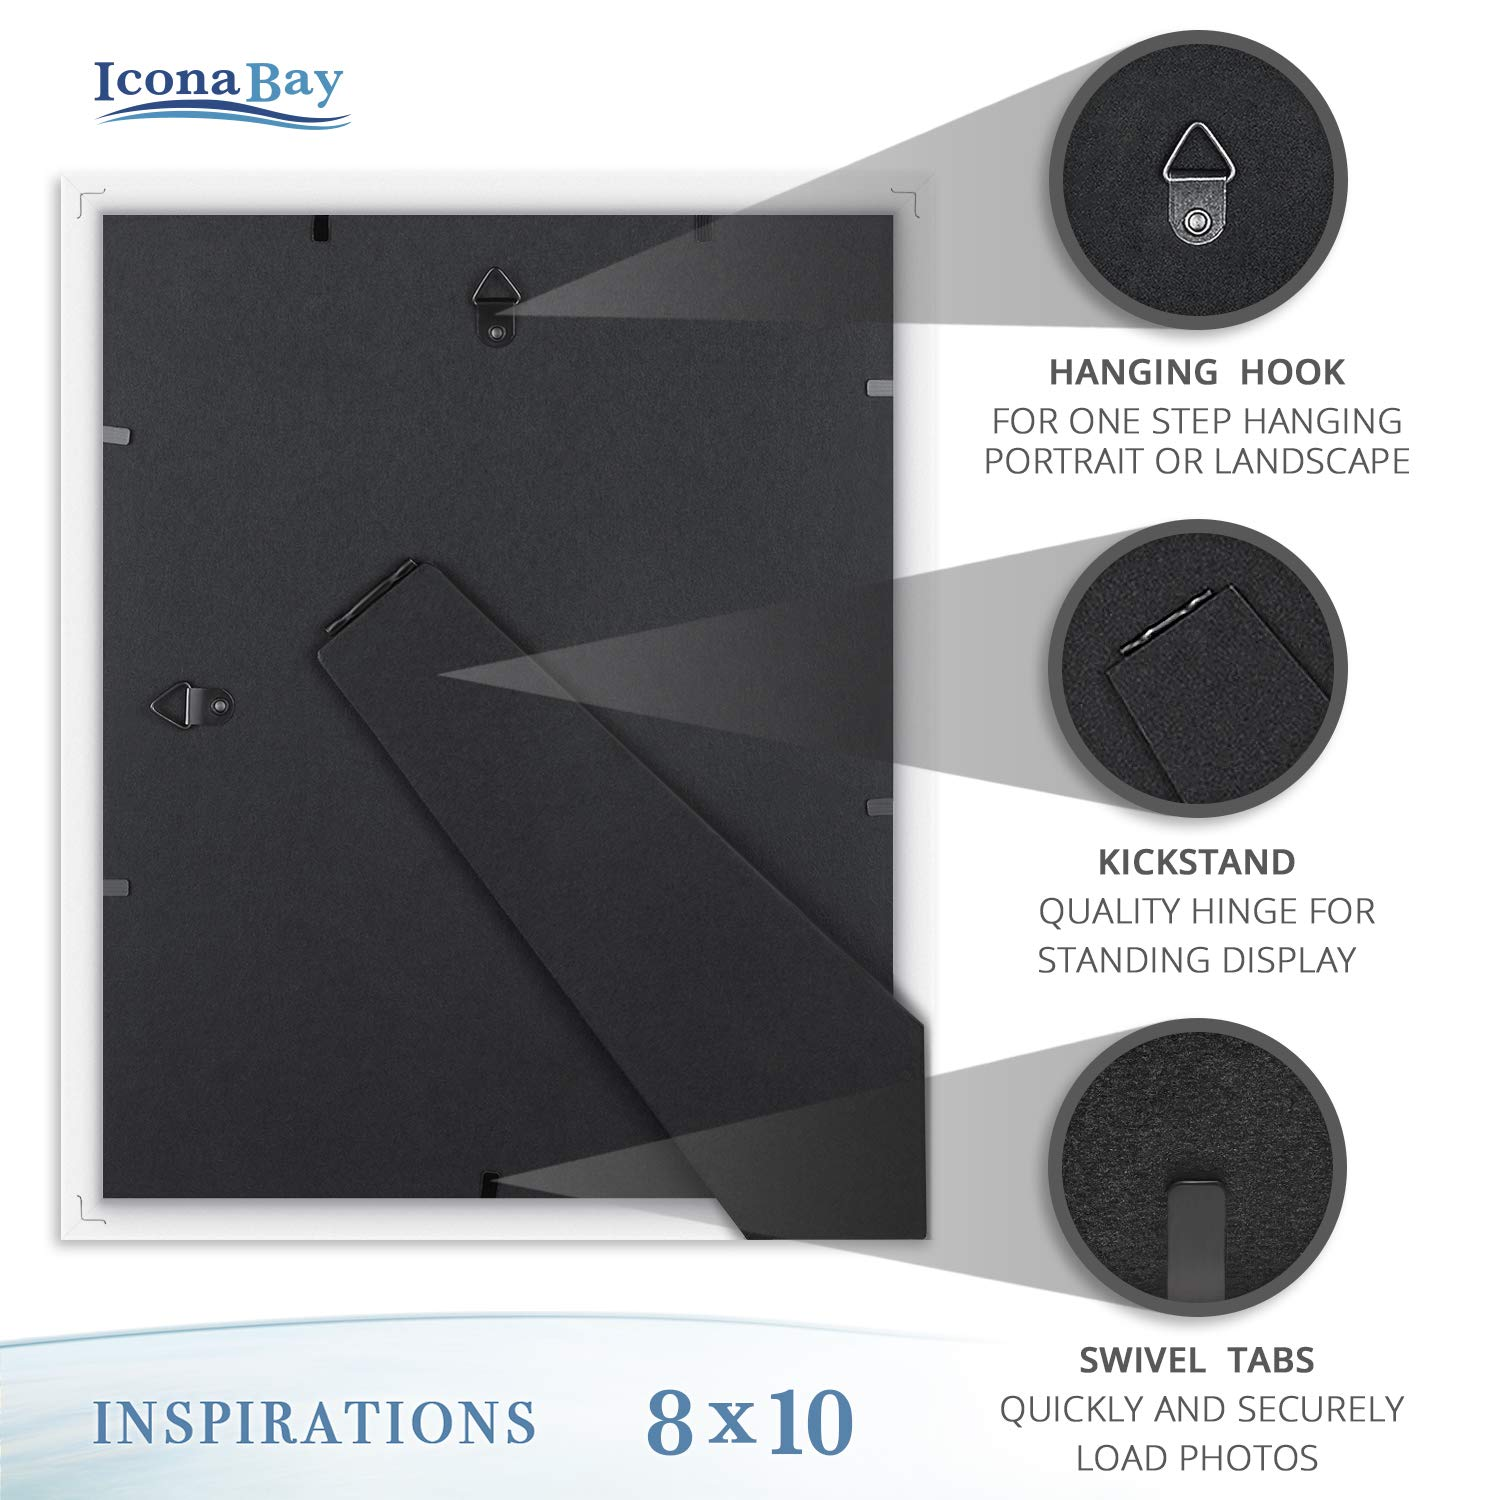 Icona Bay 8x10 Picture Frames (6 Pack, White) Picture Frame Set, Wall Mount or Table Top, Set of 6 Inspirations Collection by Icona Bay (Image #6)